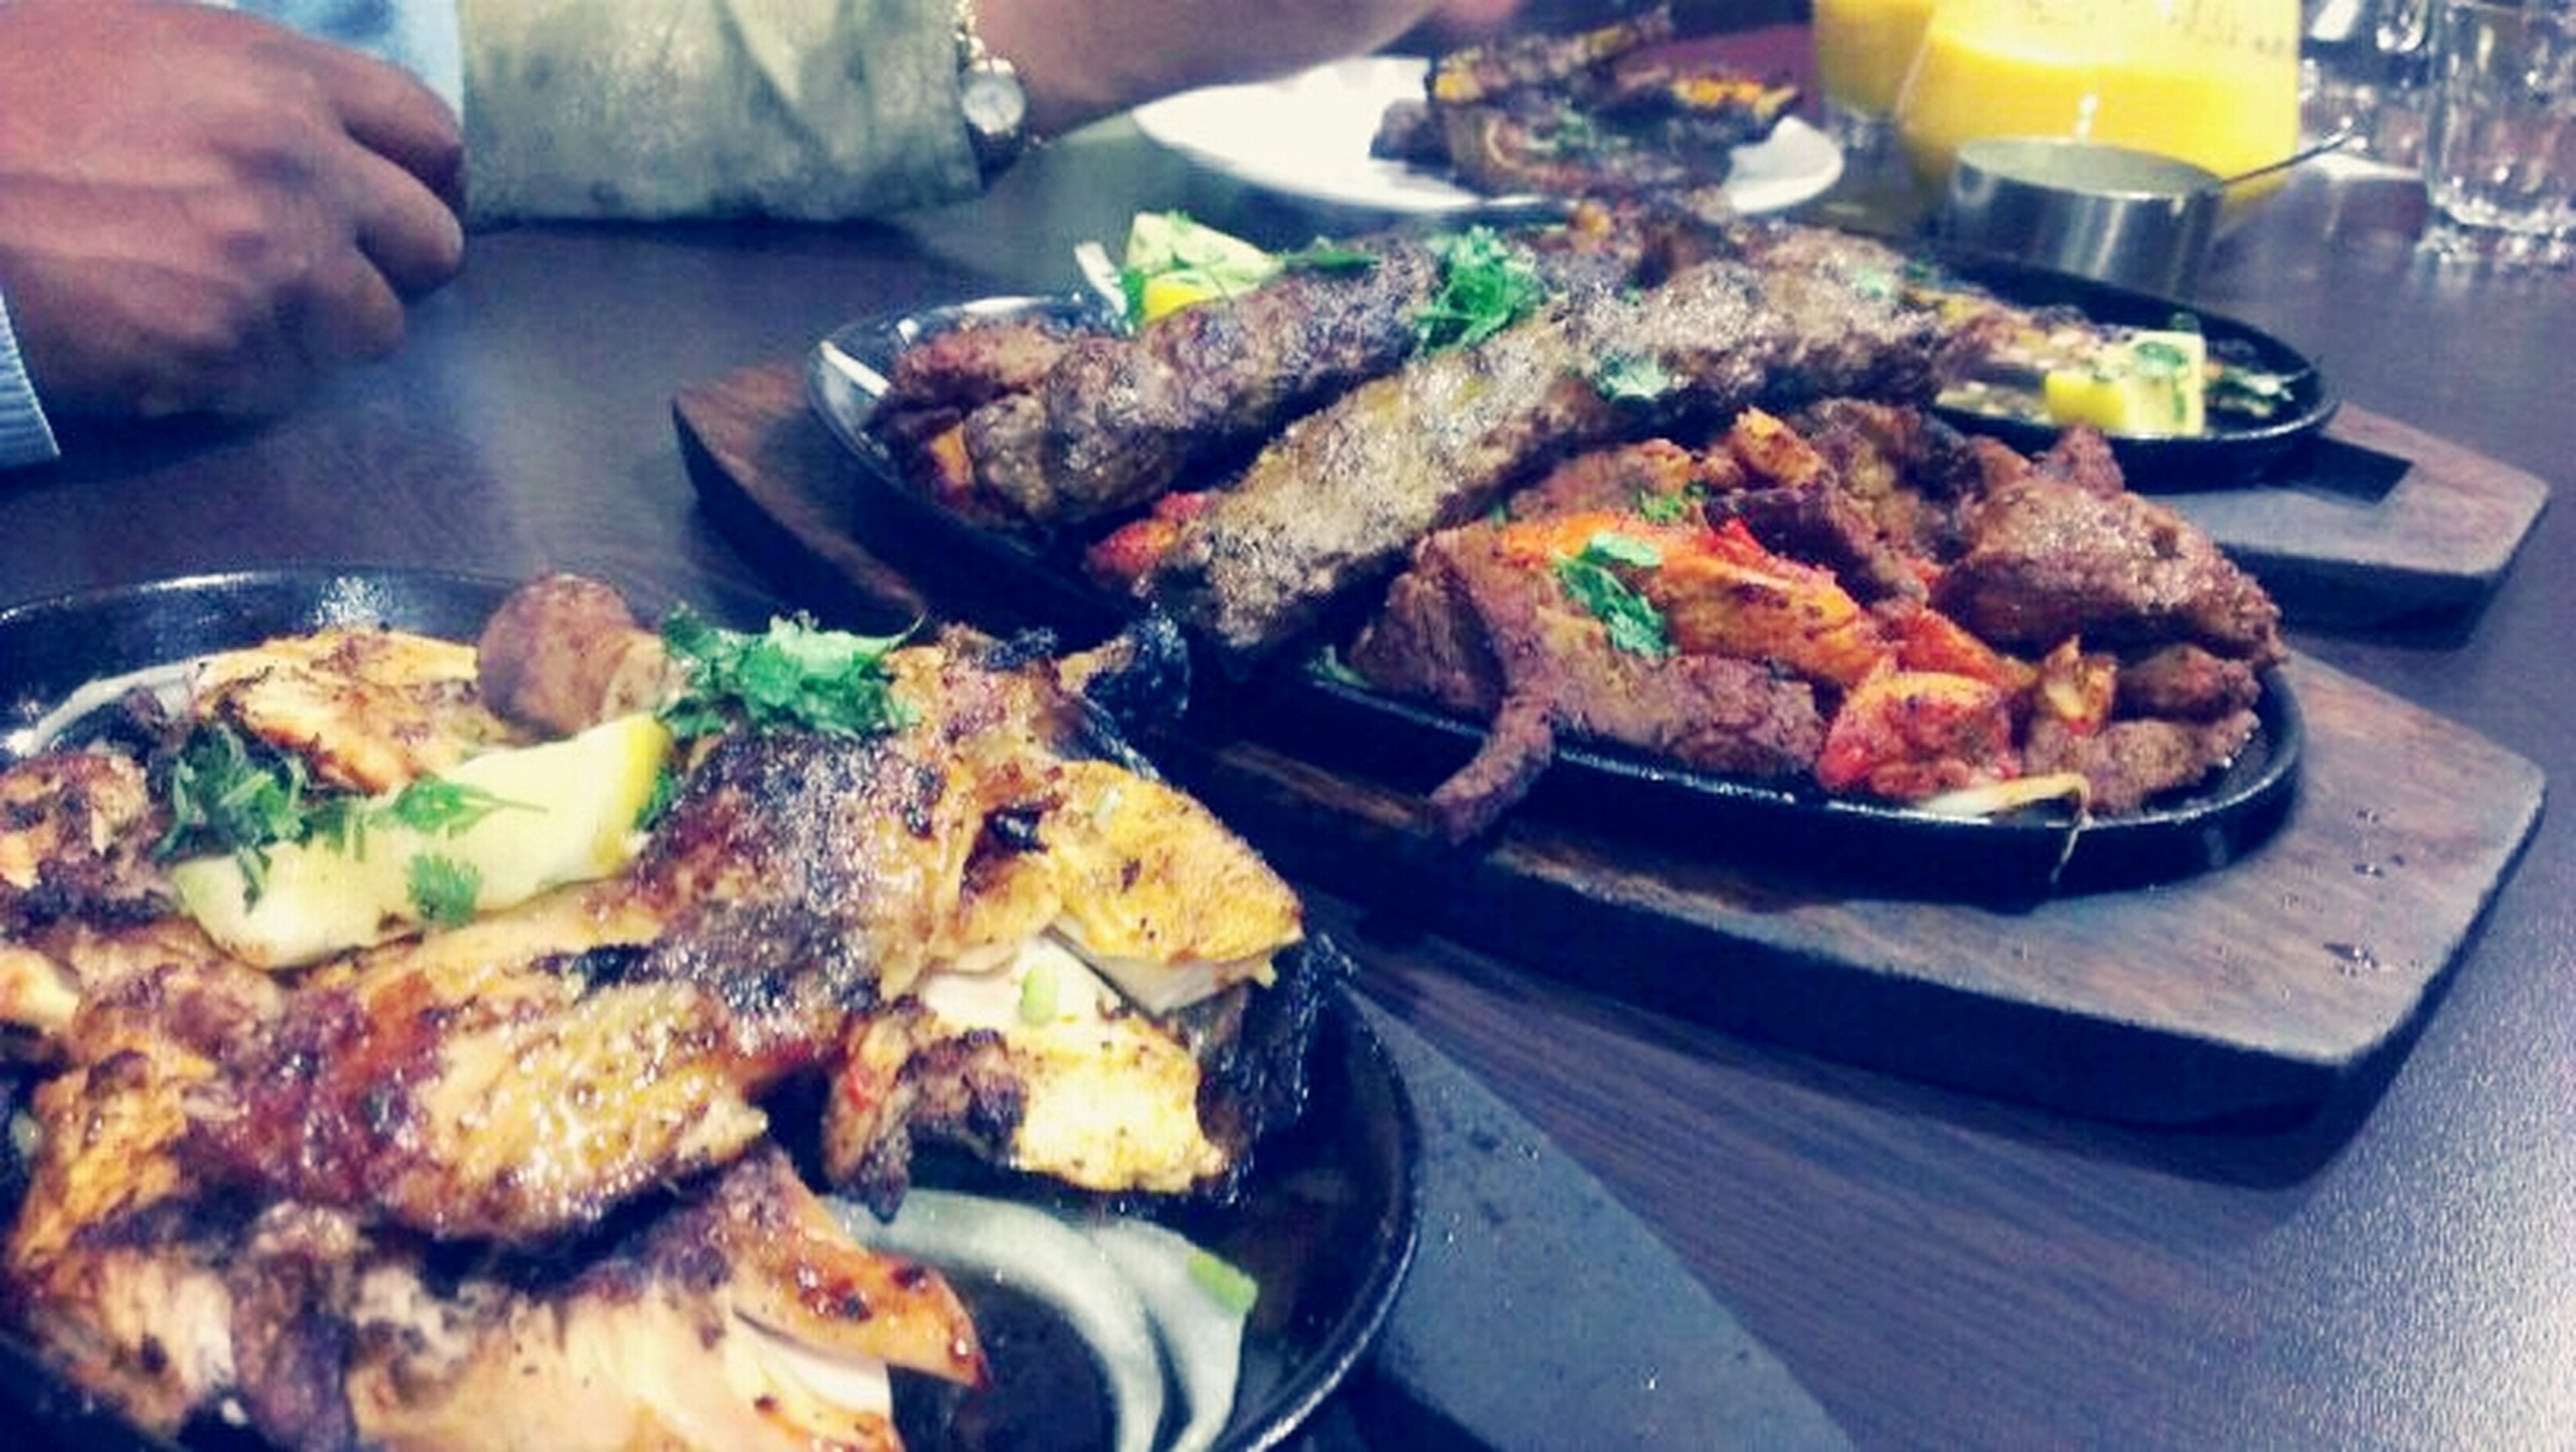 food and drink, food, freshness, meat, seafood, indoors, ready-to-eat, meal, healthy eating, grilled, close-up, chicken meat, fish, cooking, roasted, cooked, still life, fried, plate, preparation